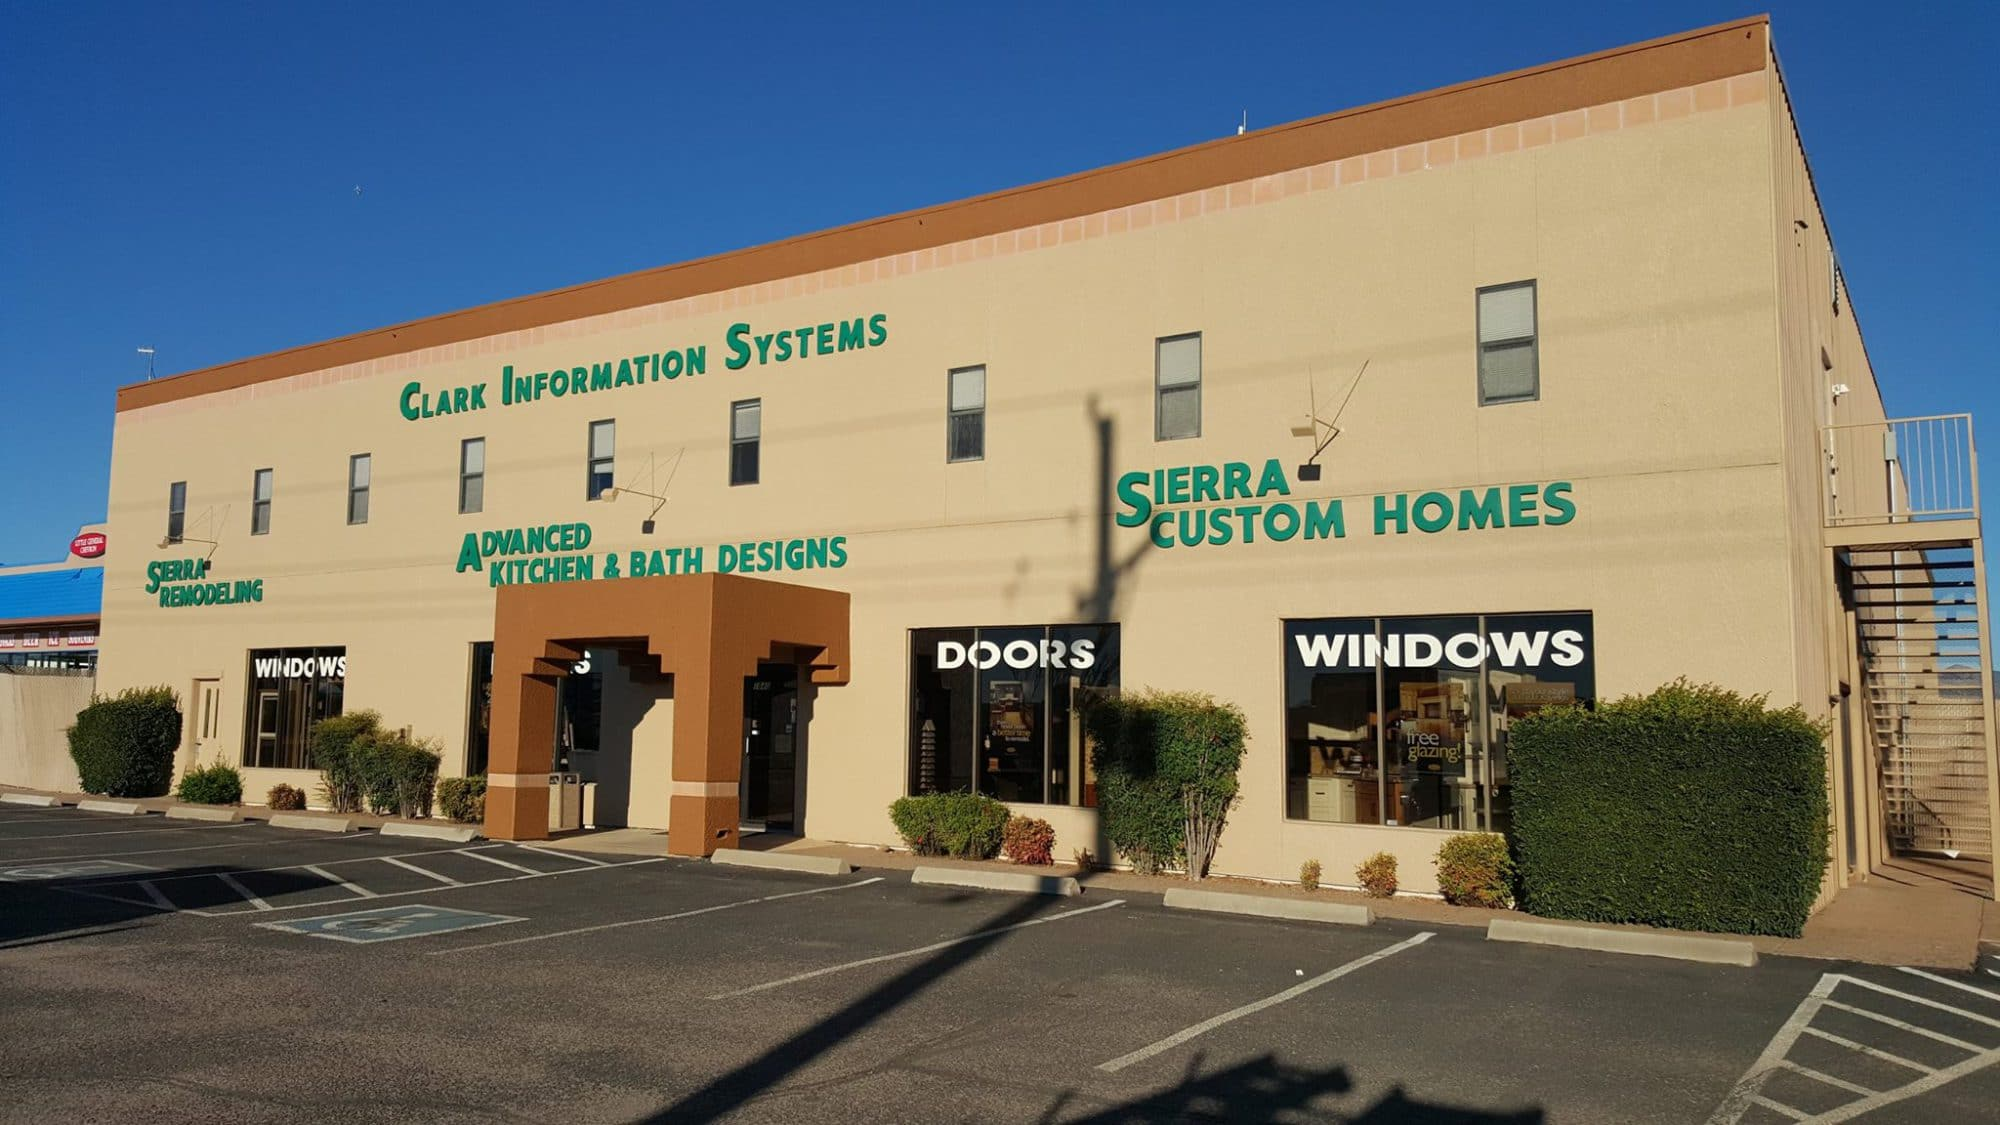 Sierra Remodeling & Home Builders showroom at 1840 S. Highway 92 in Sierra Vista, Arizona